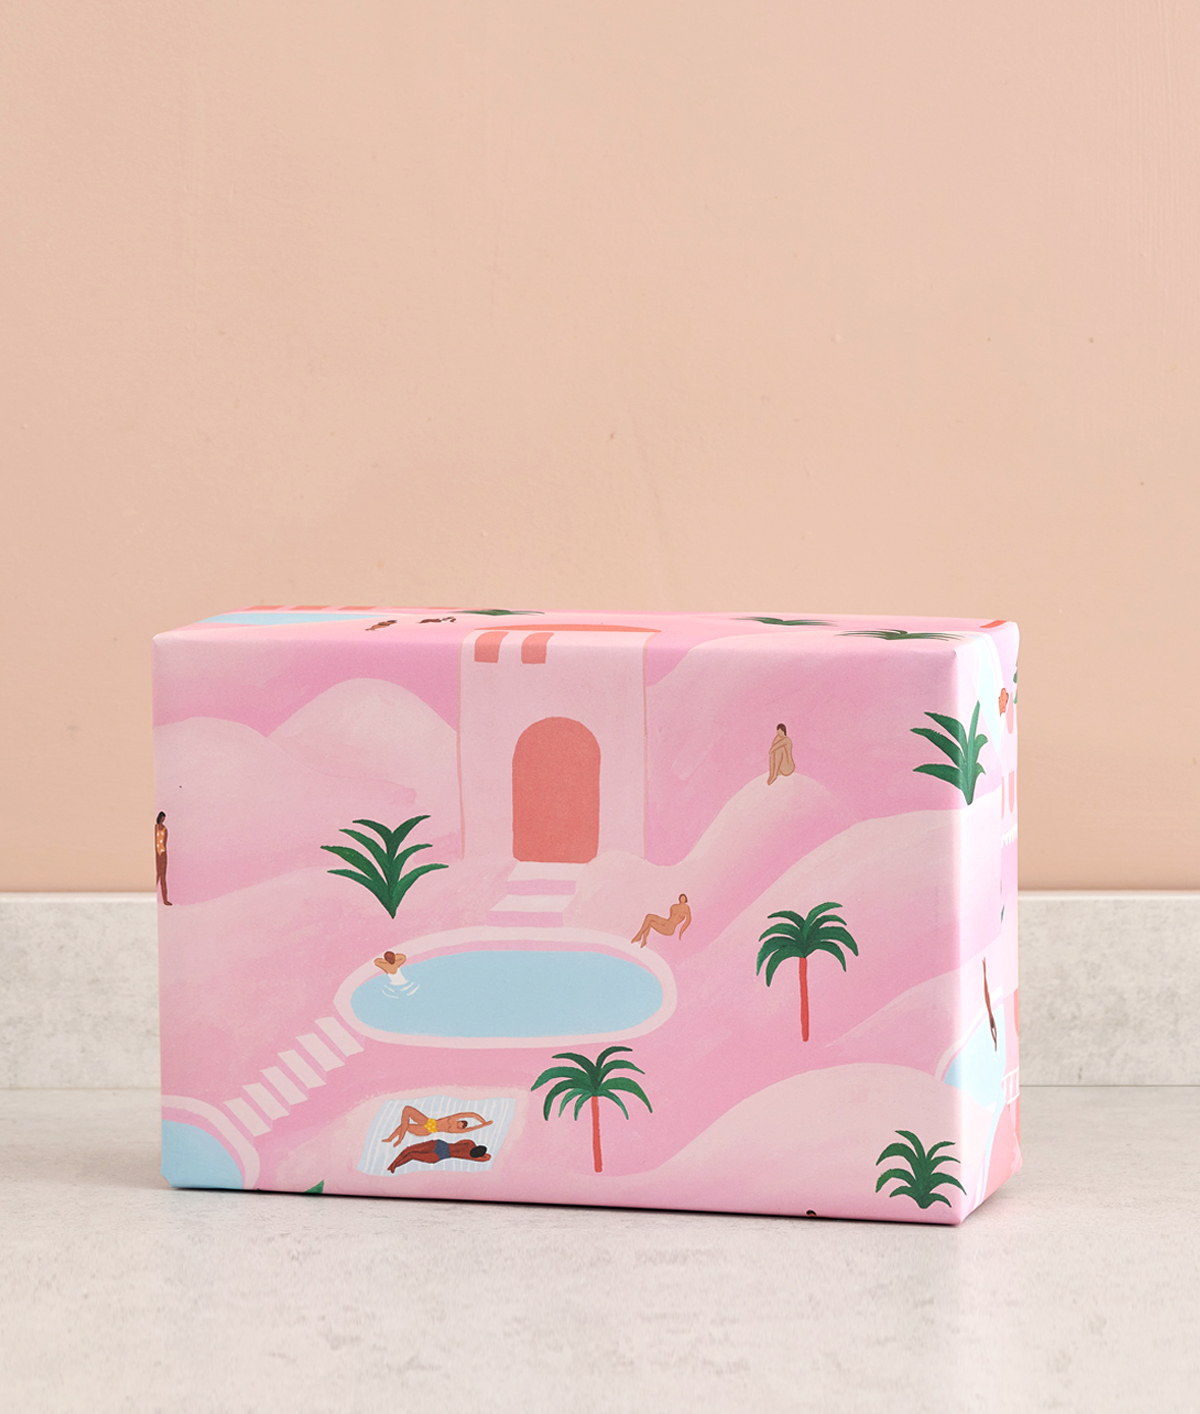 Wrapping paper - Desert Oasis